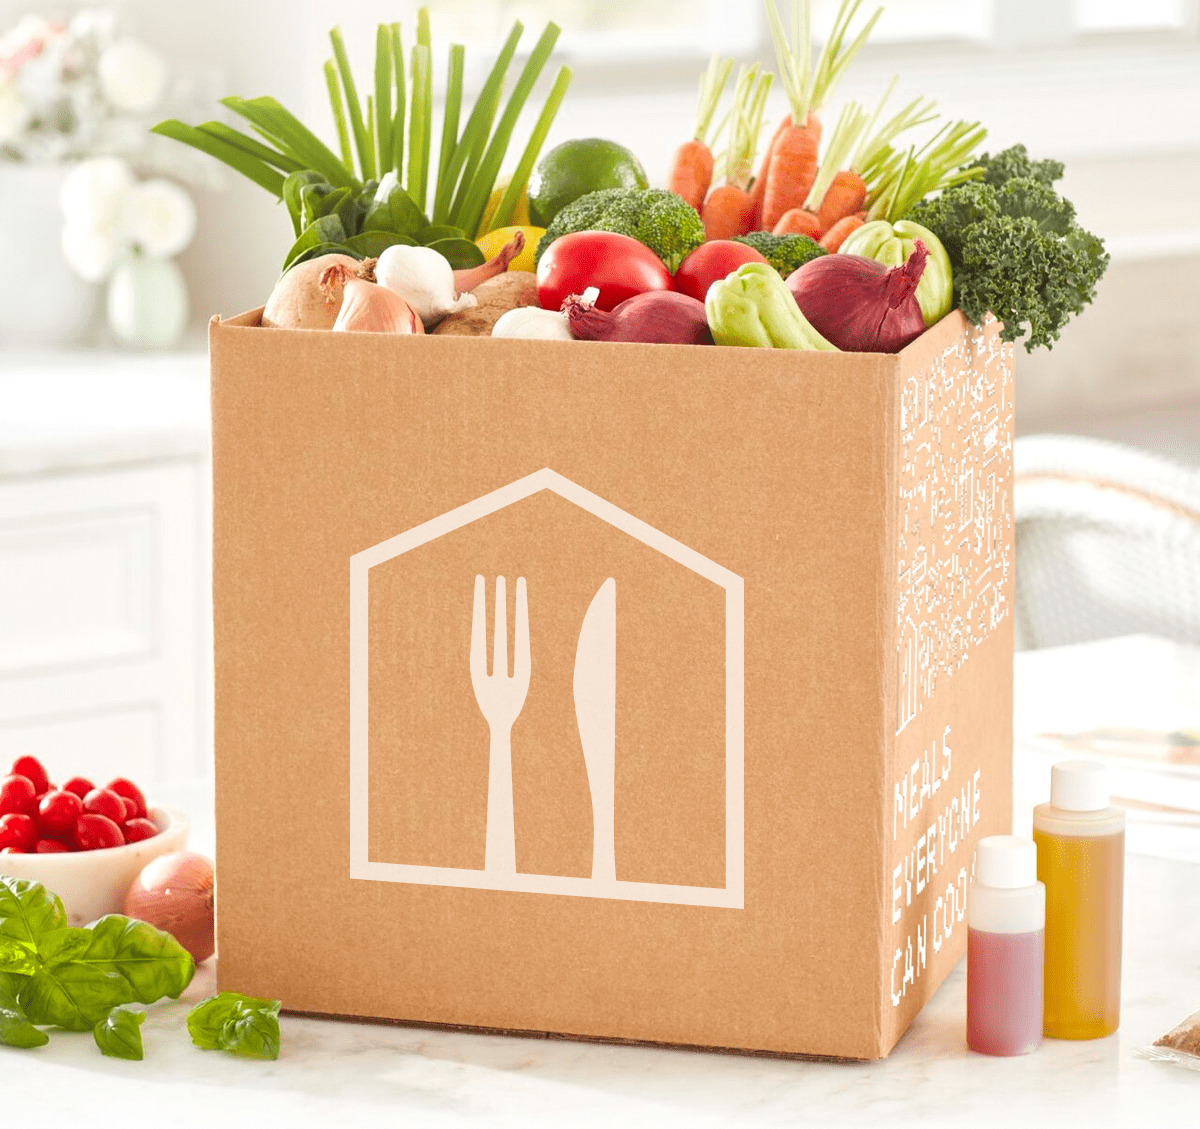 Home Chef Coupon: Save $80 Off Your First Four Boxes!